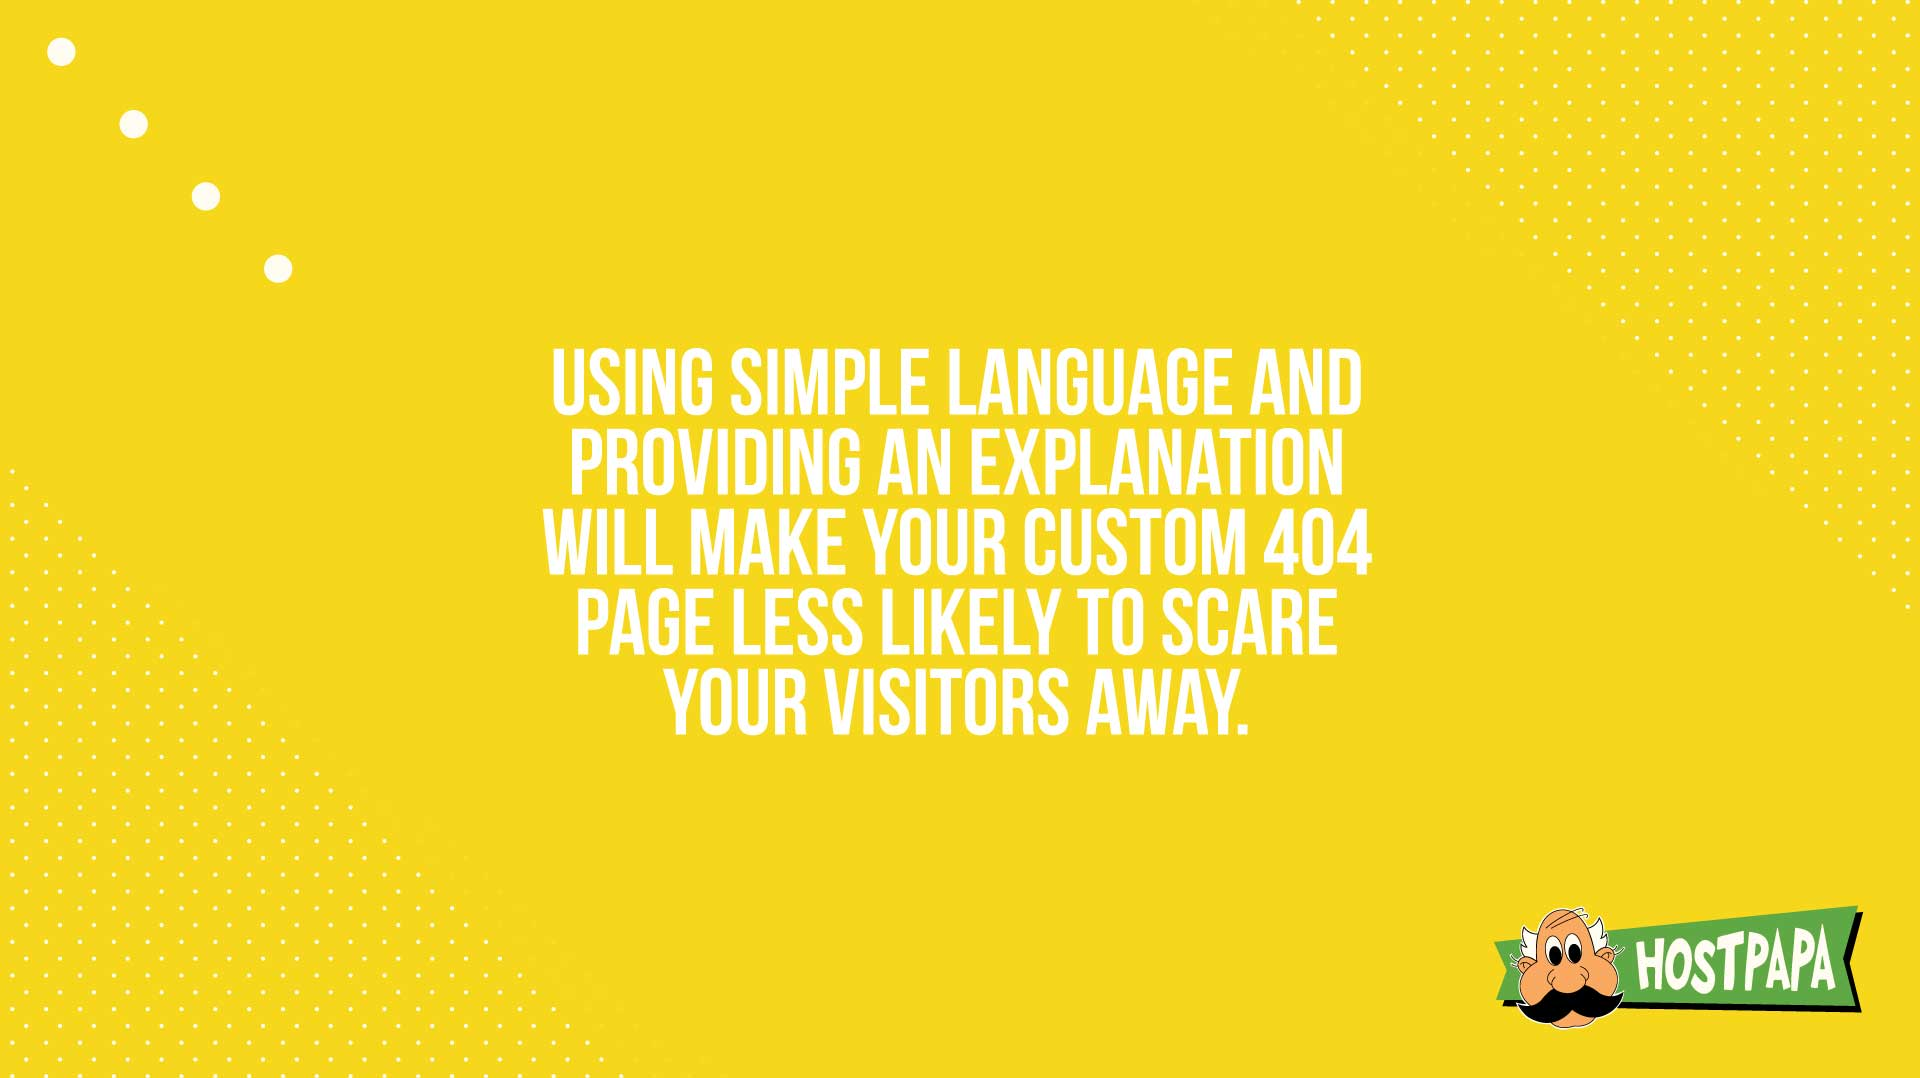 Using simple language will make your 404 page less likely to scare your visitors